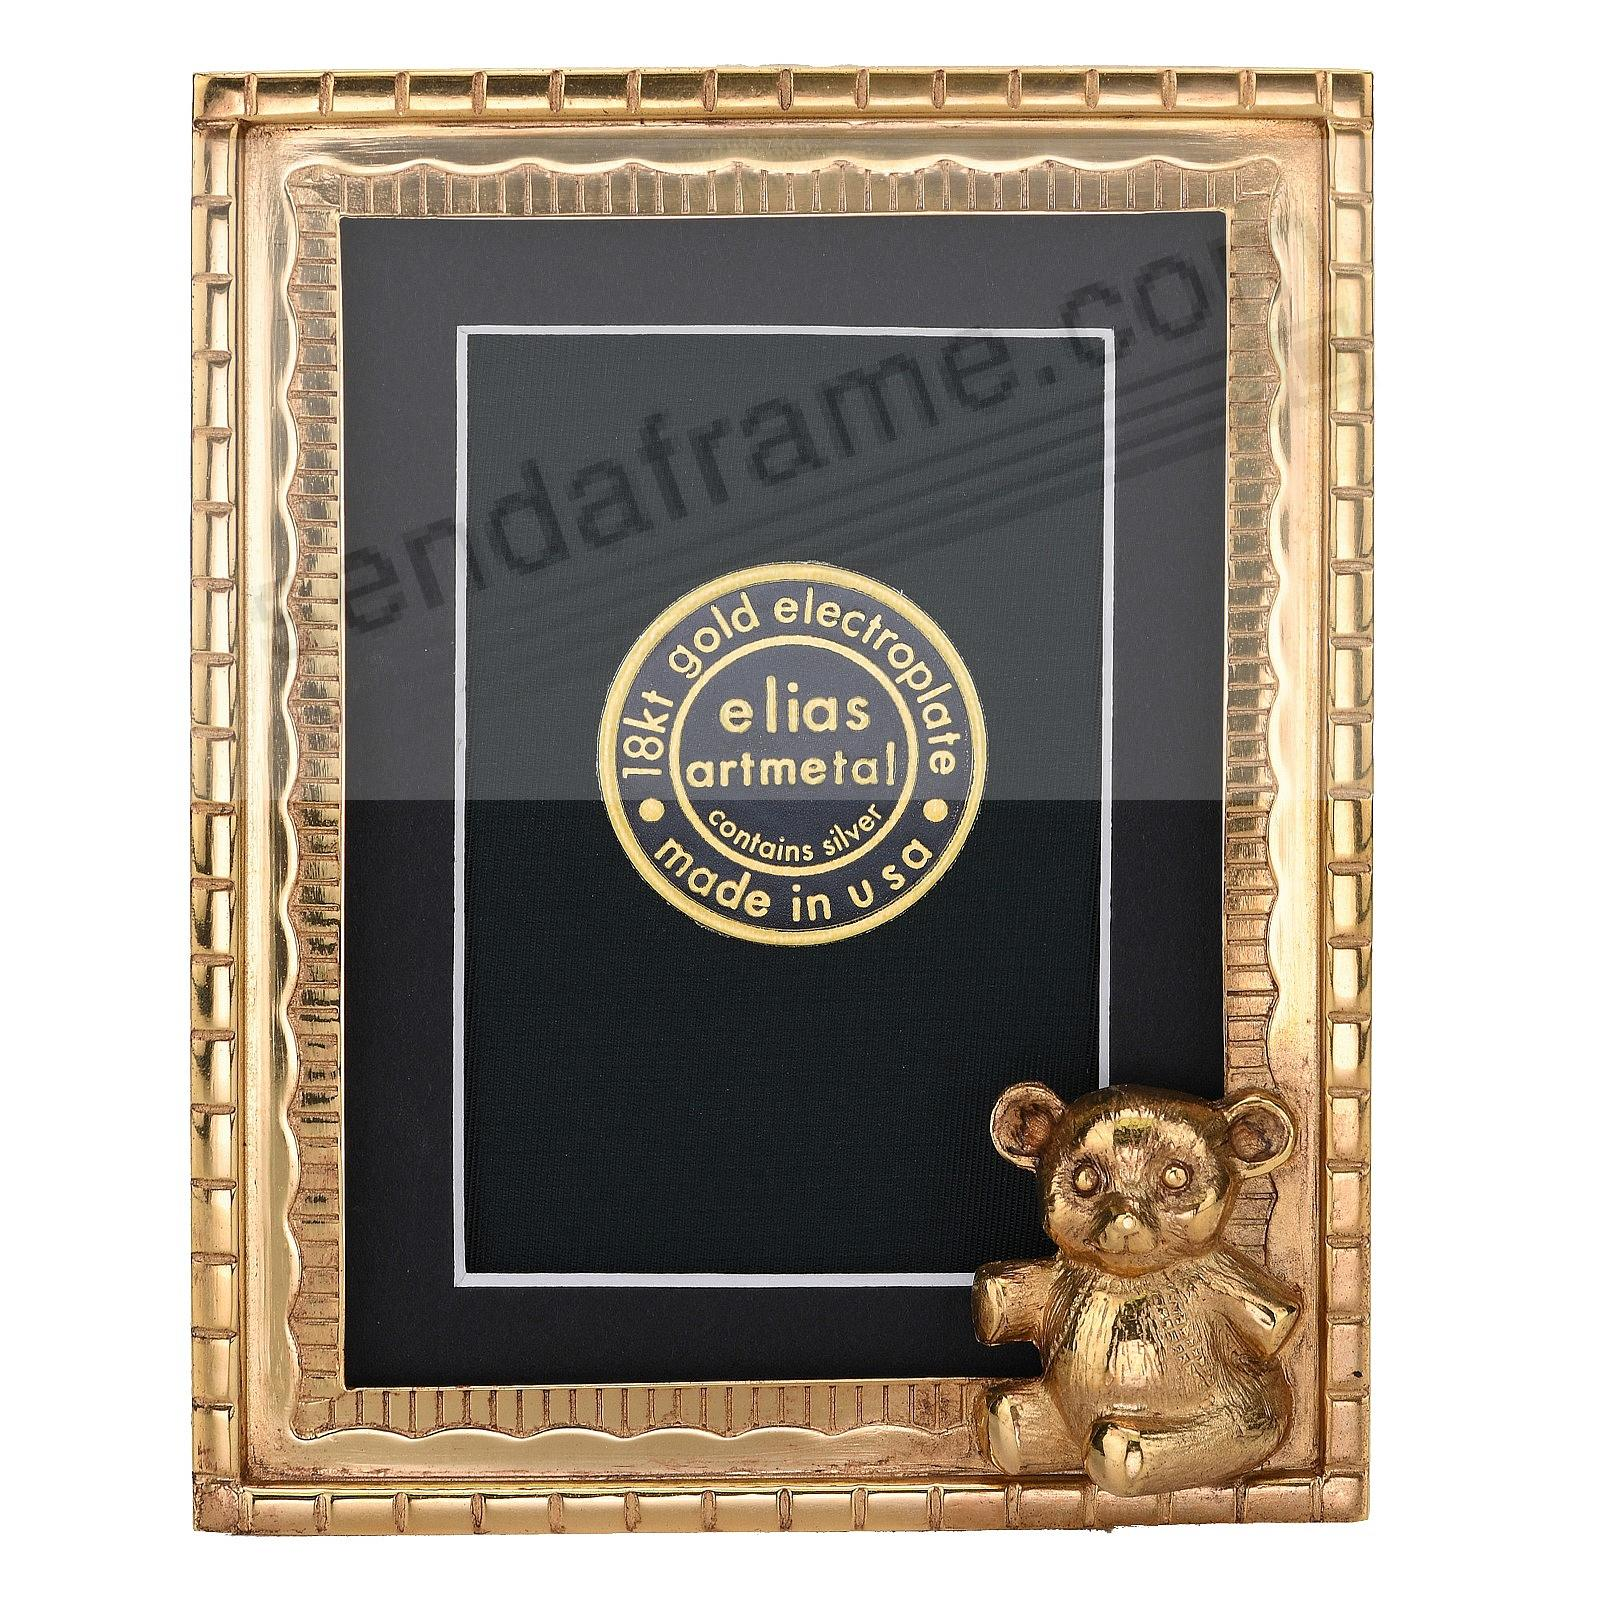 TEDDY BEAR 18kt Gold Vermeil Over Pewter 3x4 frame by Elias Artmetal®